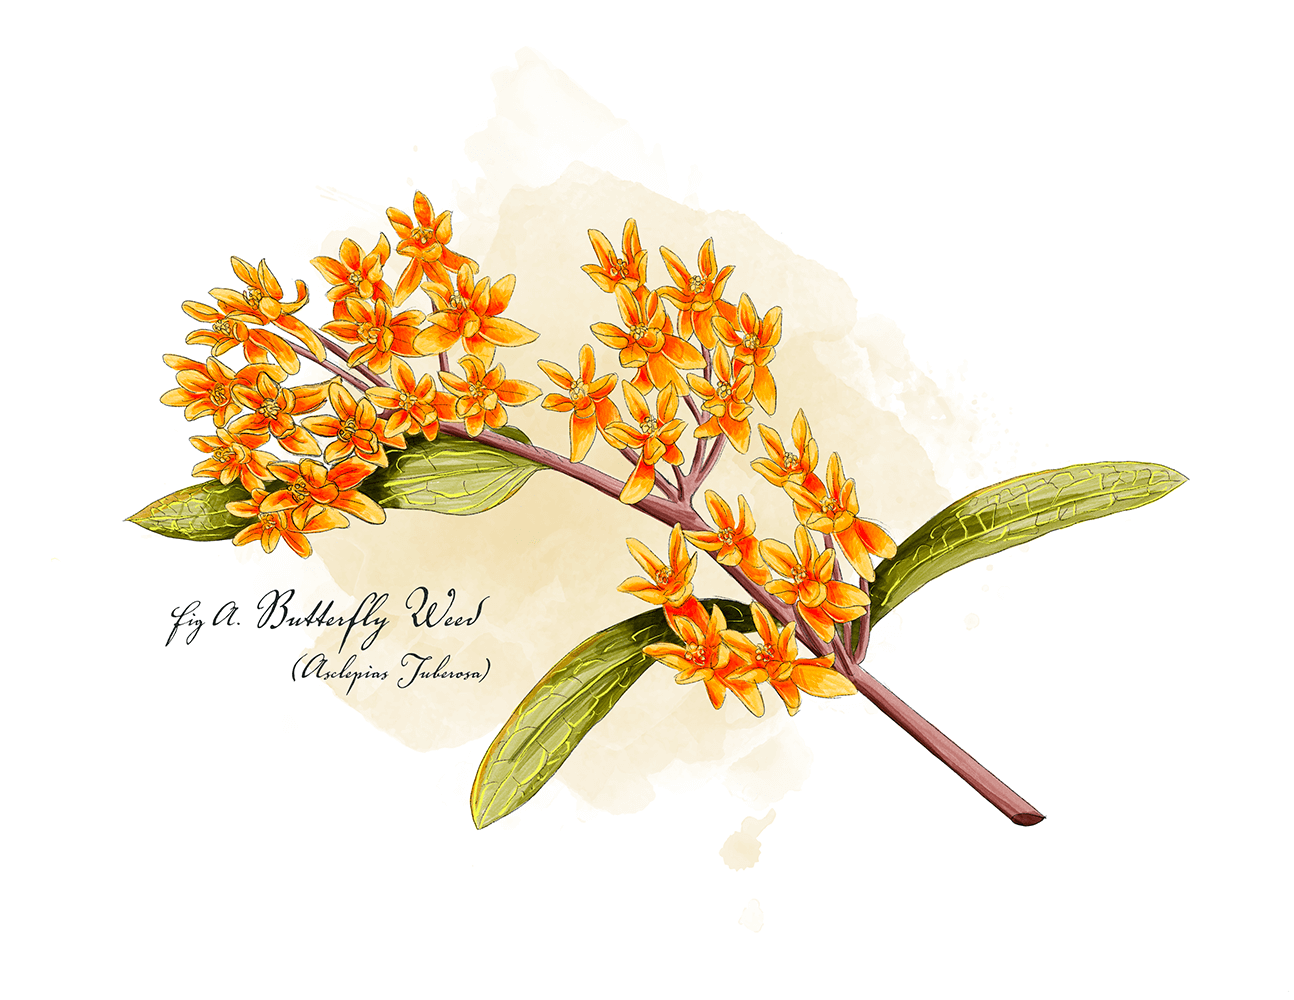 Butterfly weed, one of many pollnator friendly plants that can makeup a pollinator garden. All illustrations are of potentila plant species for pollinators.